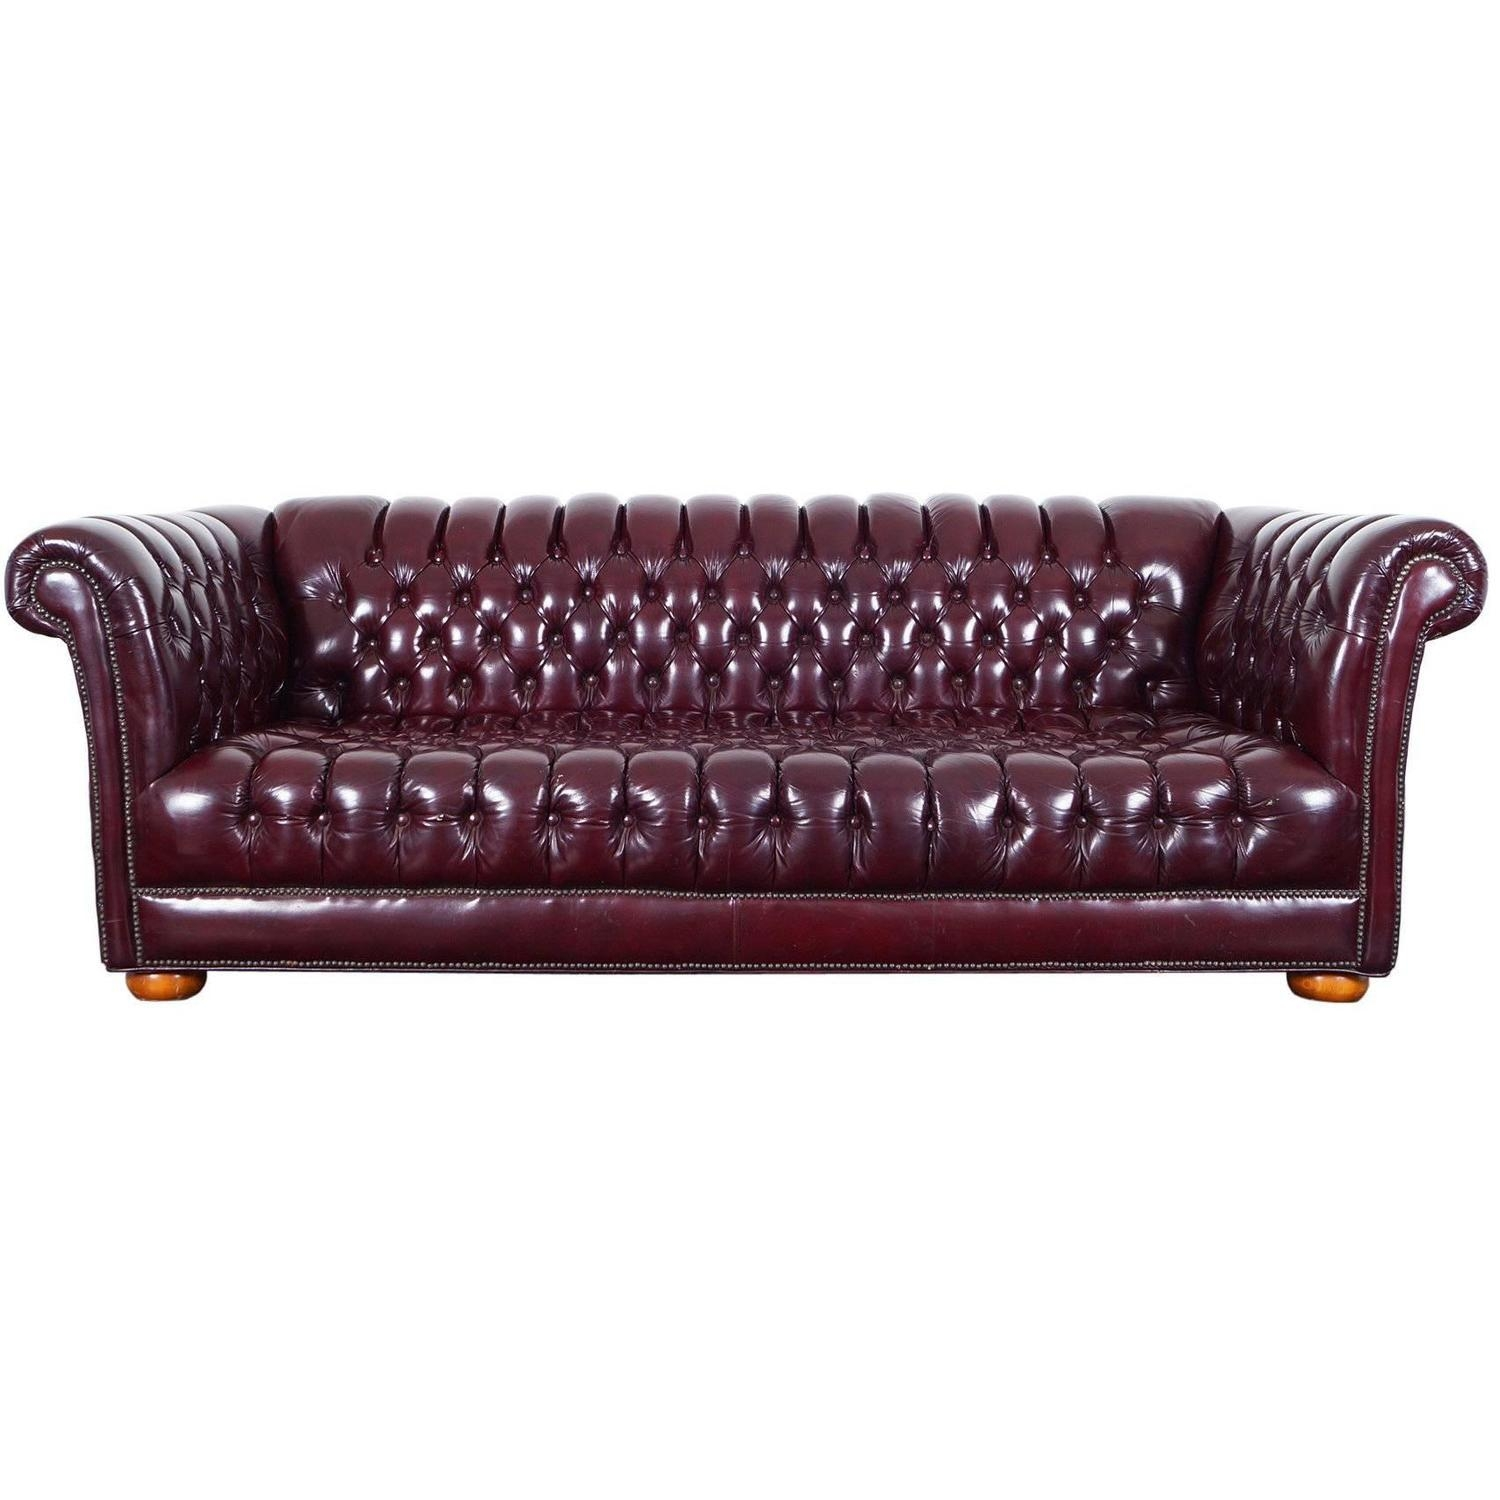 Vintage Black Leather Chesterfield Sofa: 20 Collection Of Vintage Chesterfield Sofas